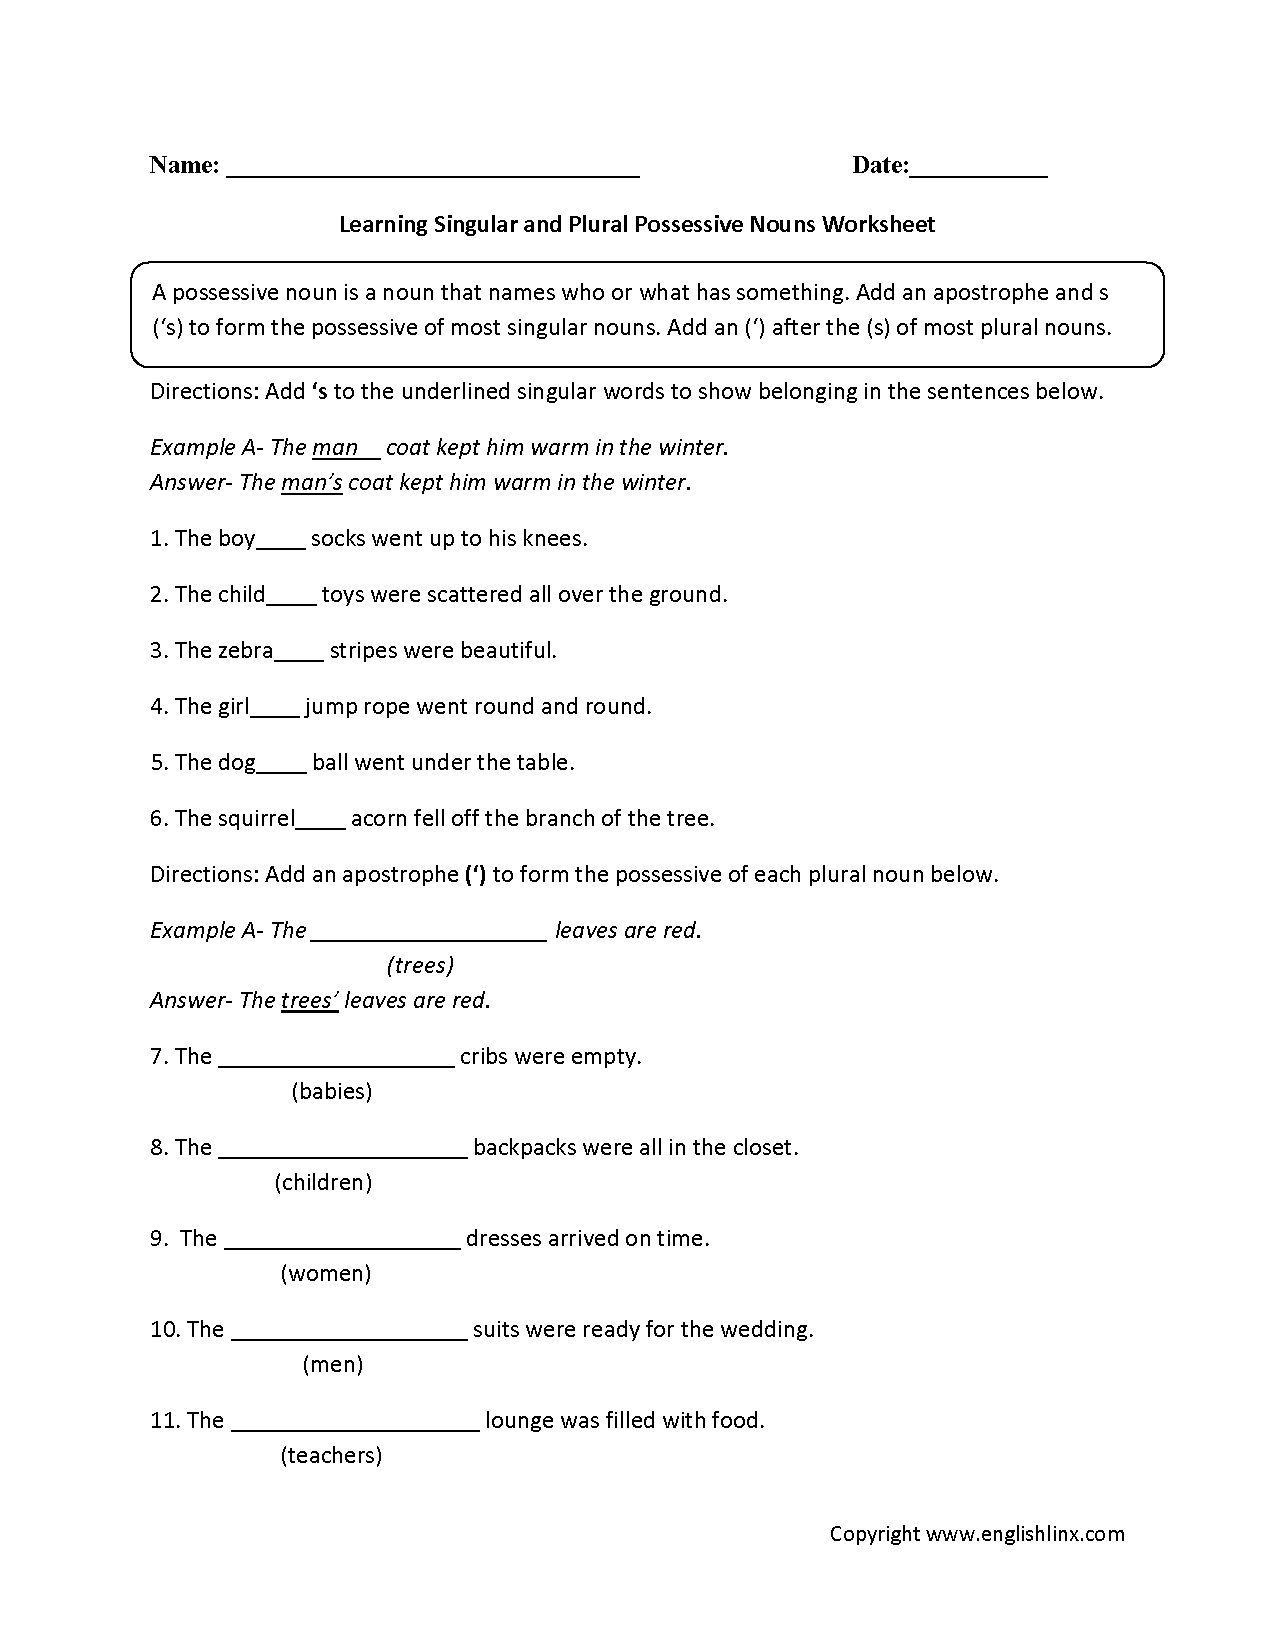 Nouns Worksheets | Possessive Nouns Worksheets | Possessive Nouns Printable Worksheets